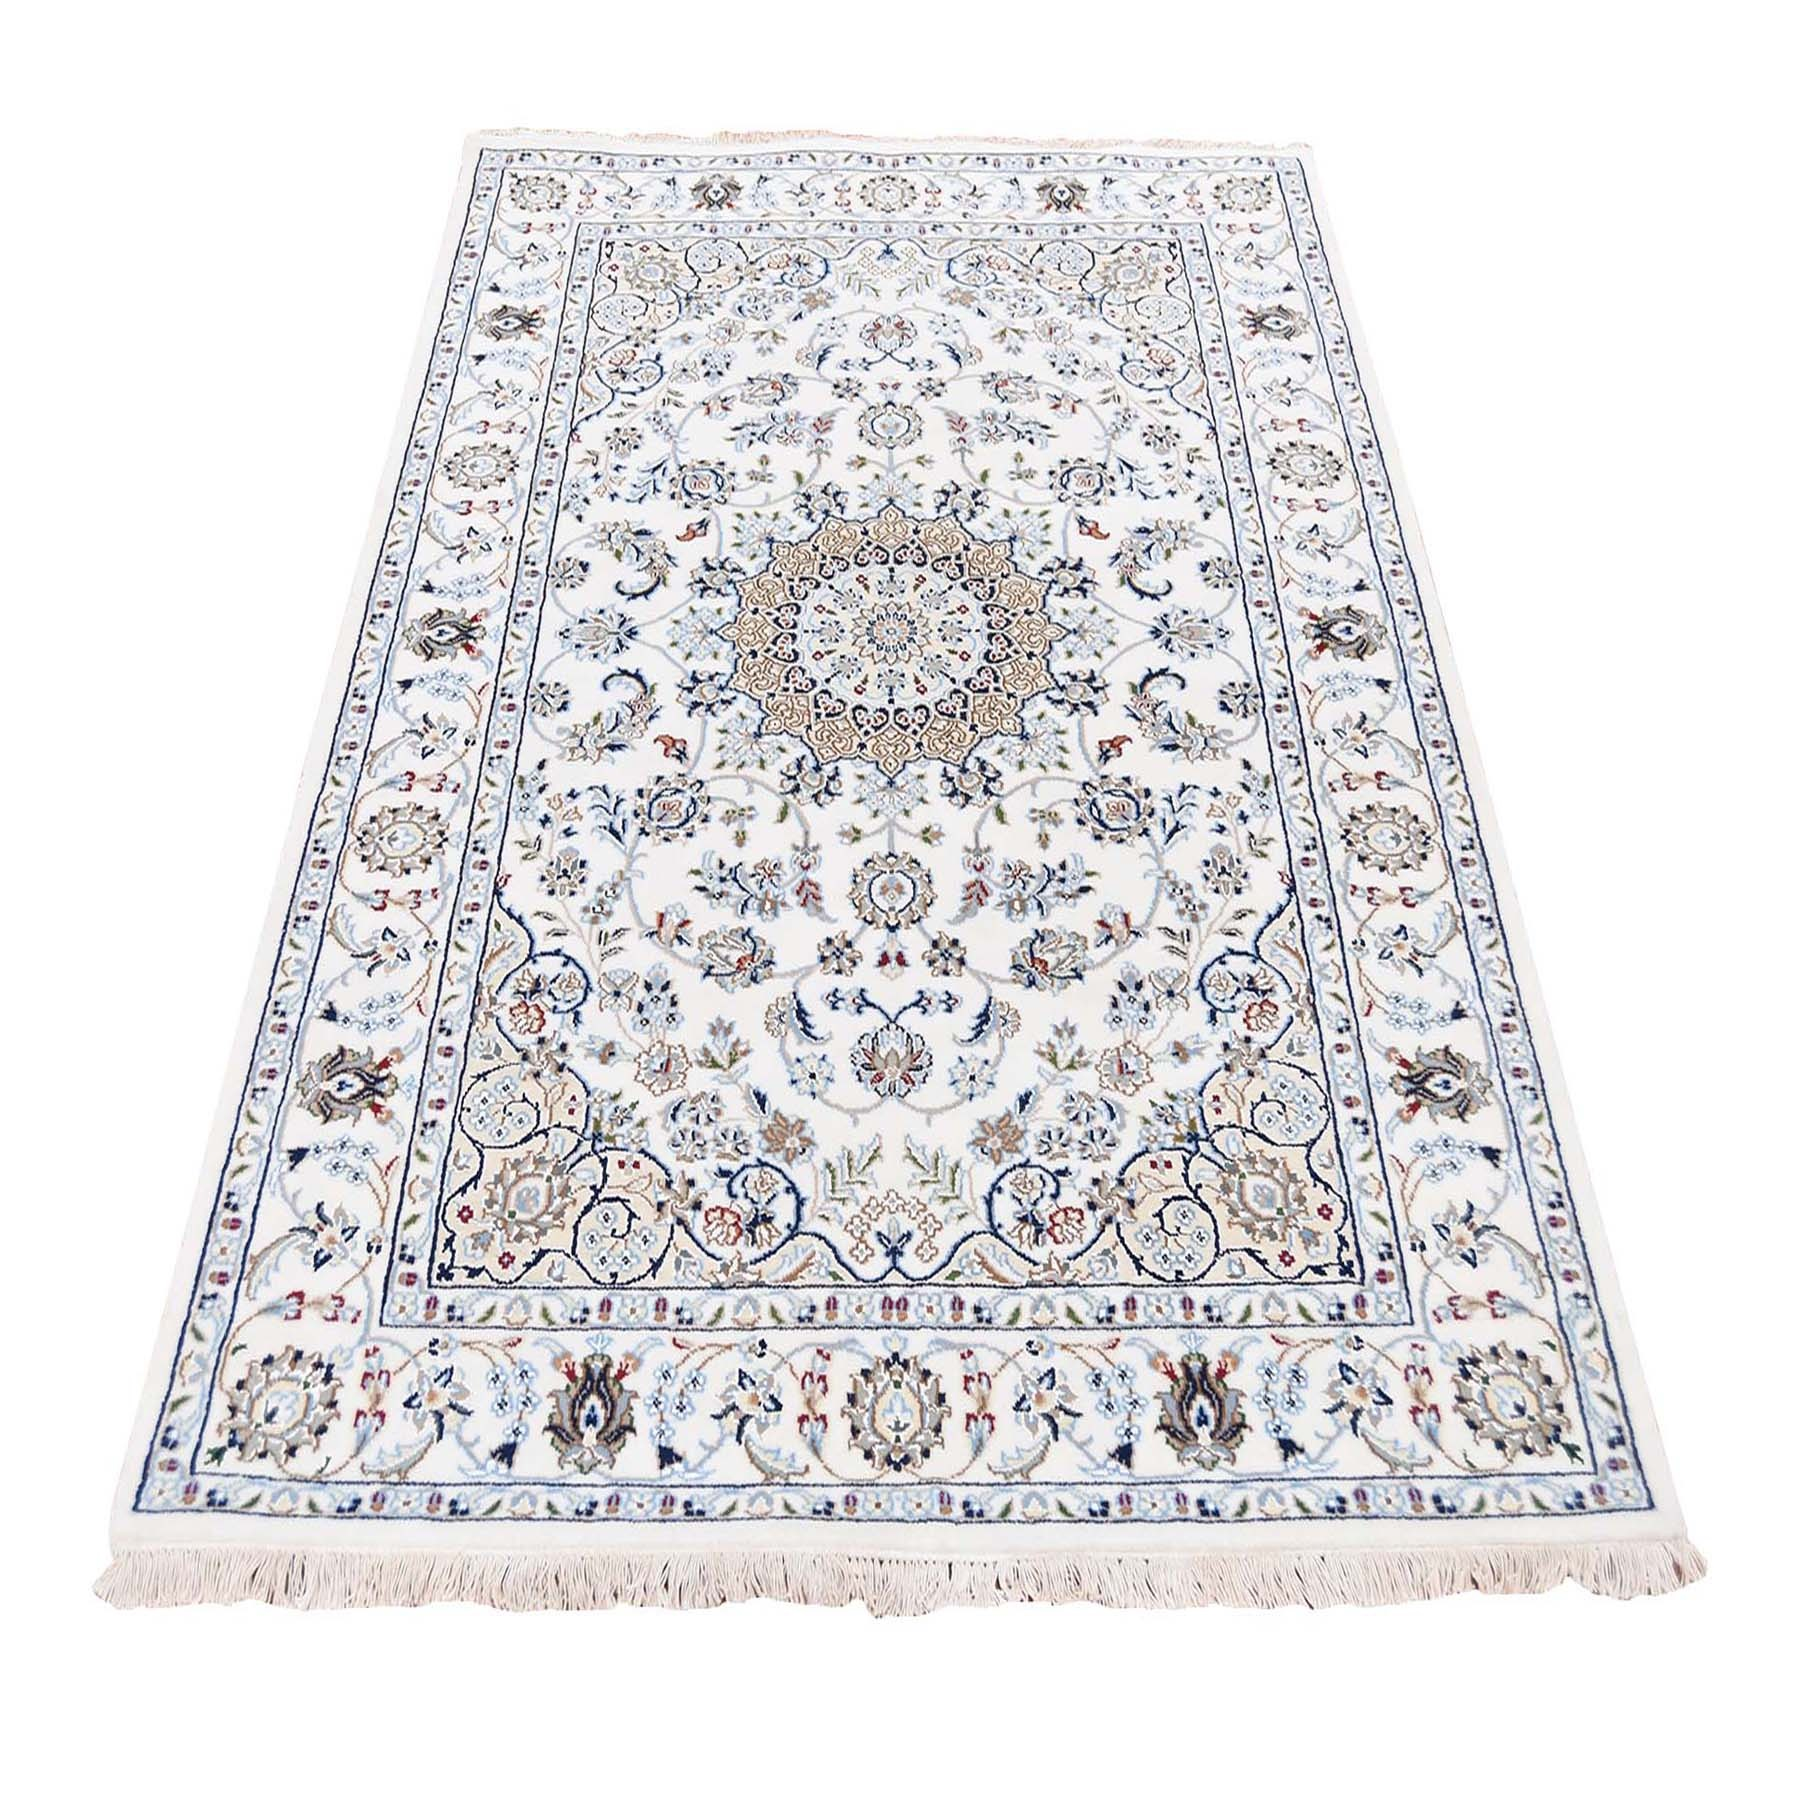 Pirniakan Collection Hand Knotted Ivory Rug No: 0195440